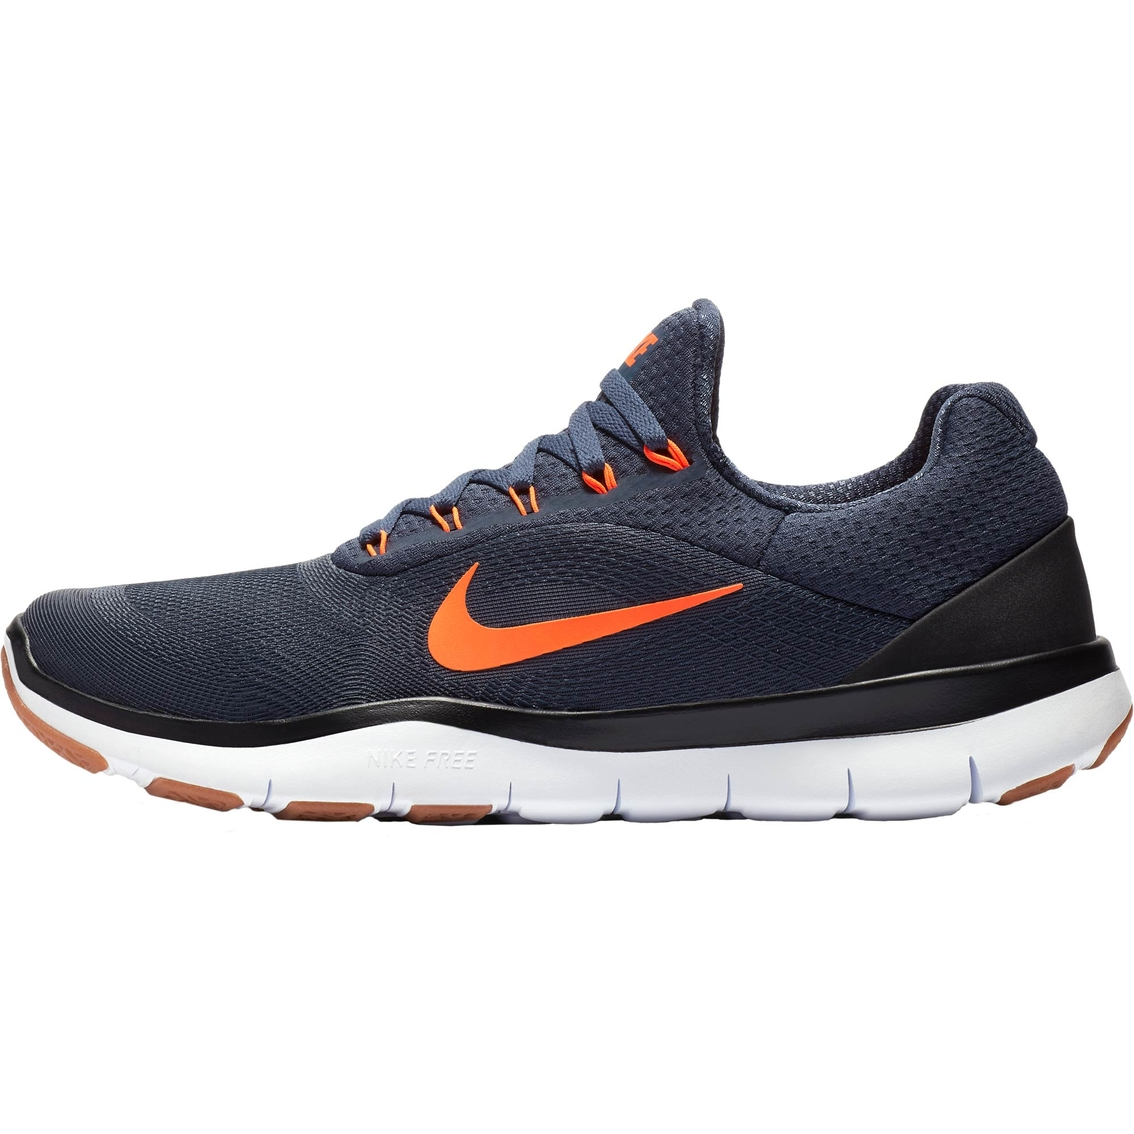 save off b13a4 a0cc1 ... closeout nike mens free trainer v7 training shoes a6bce 3d8a6